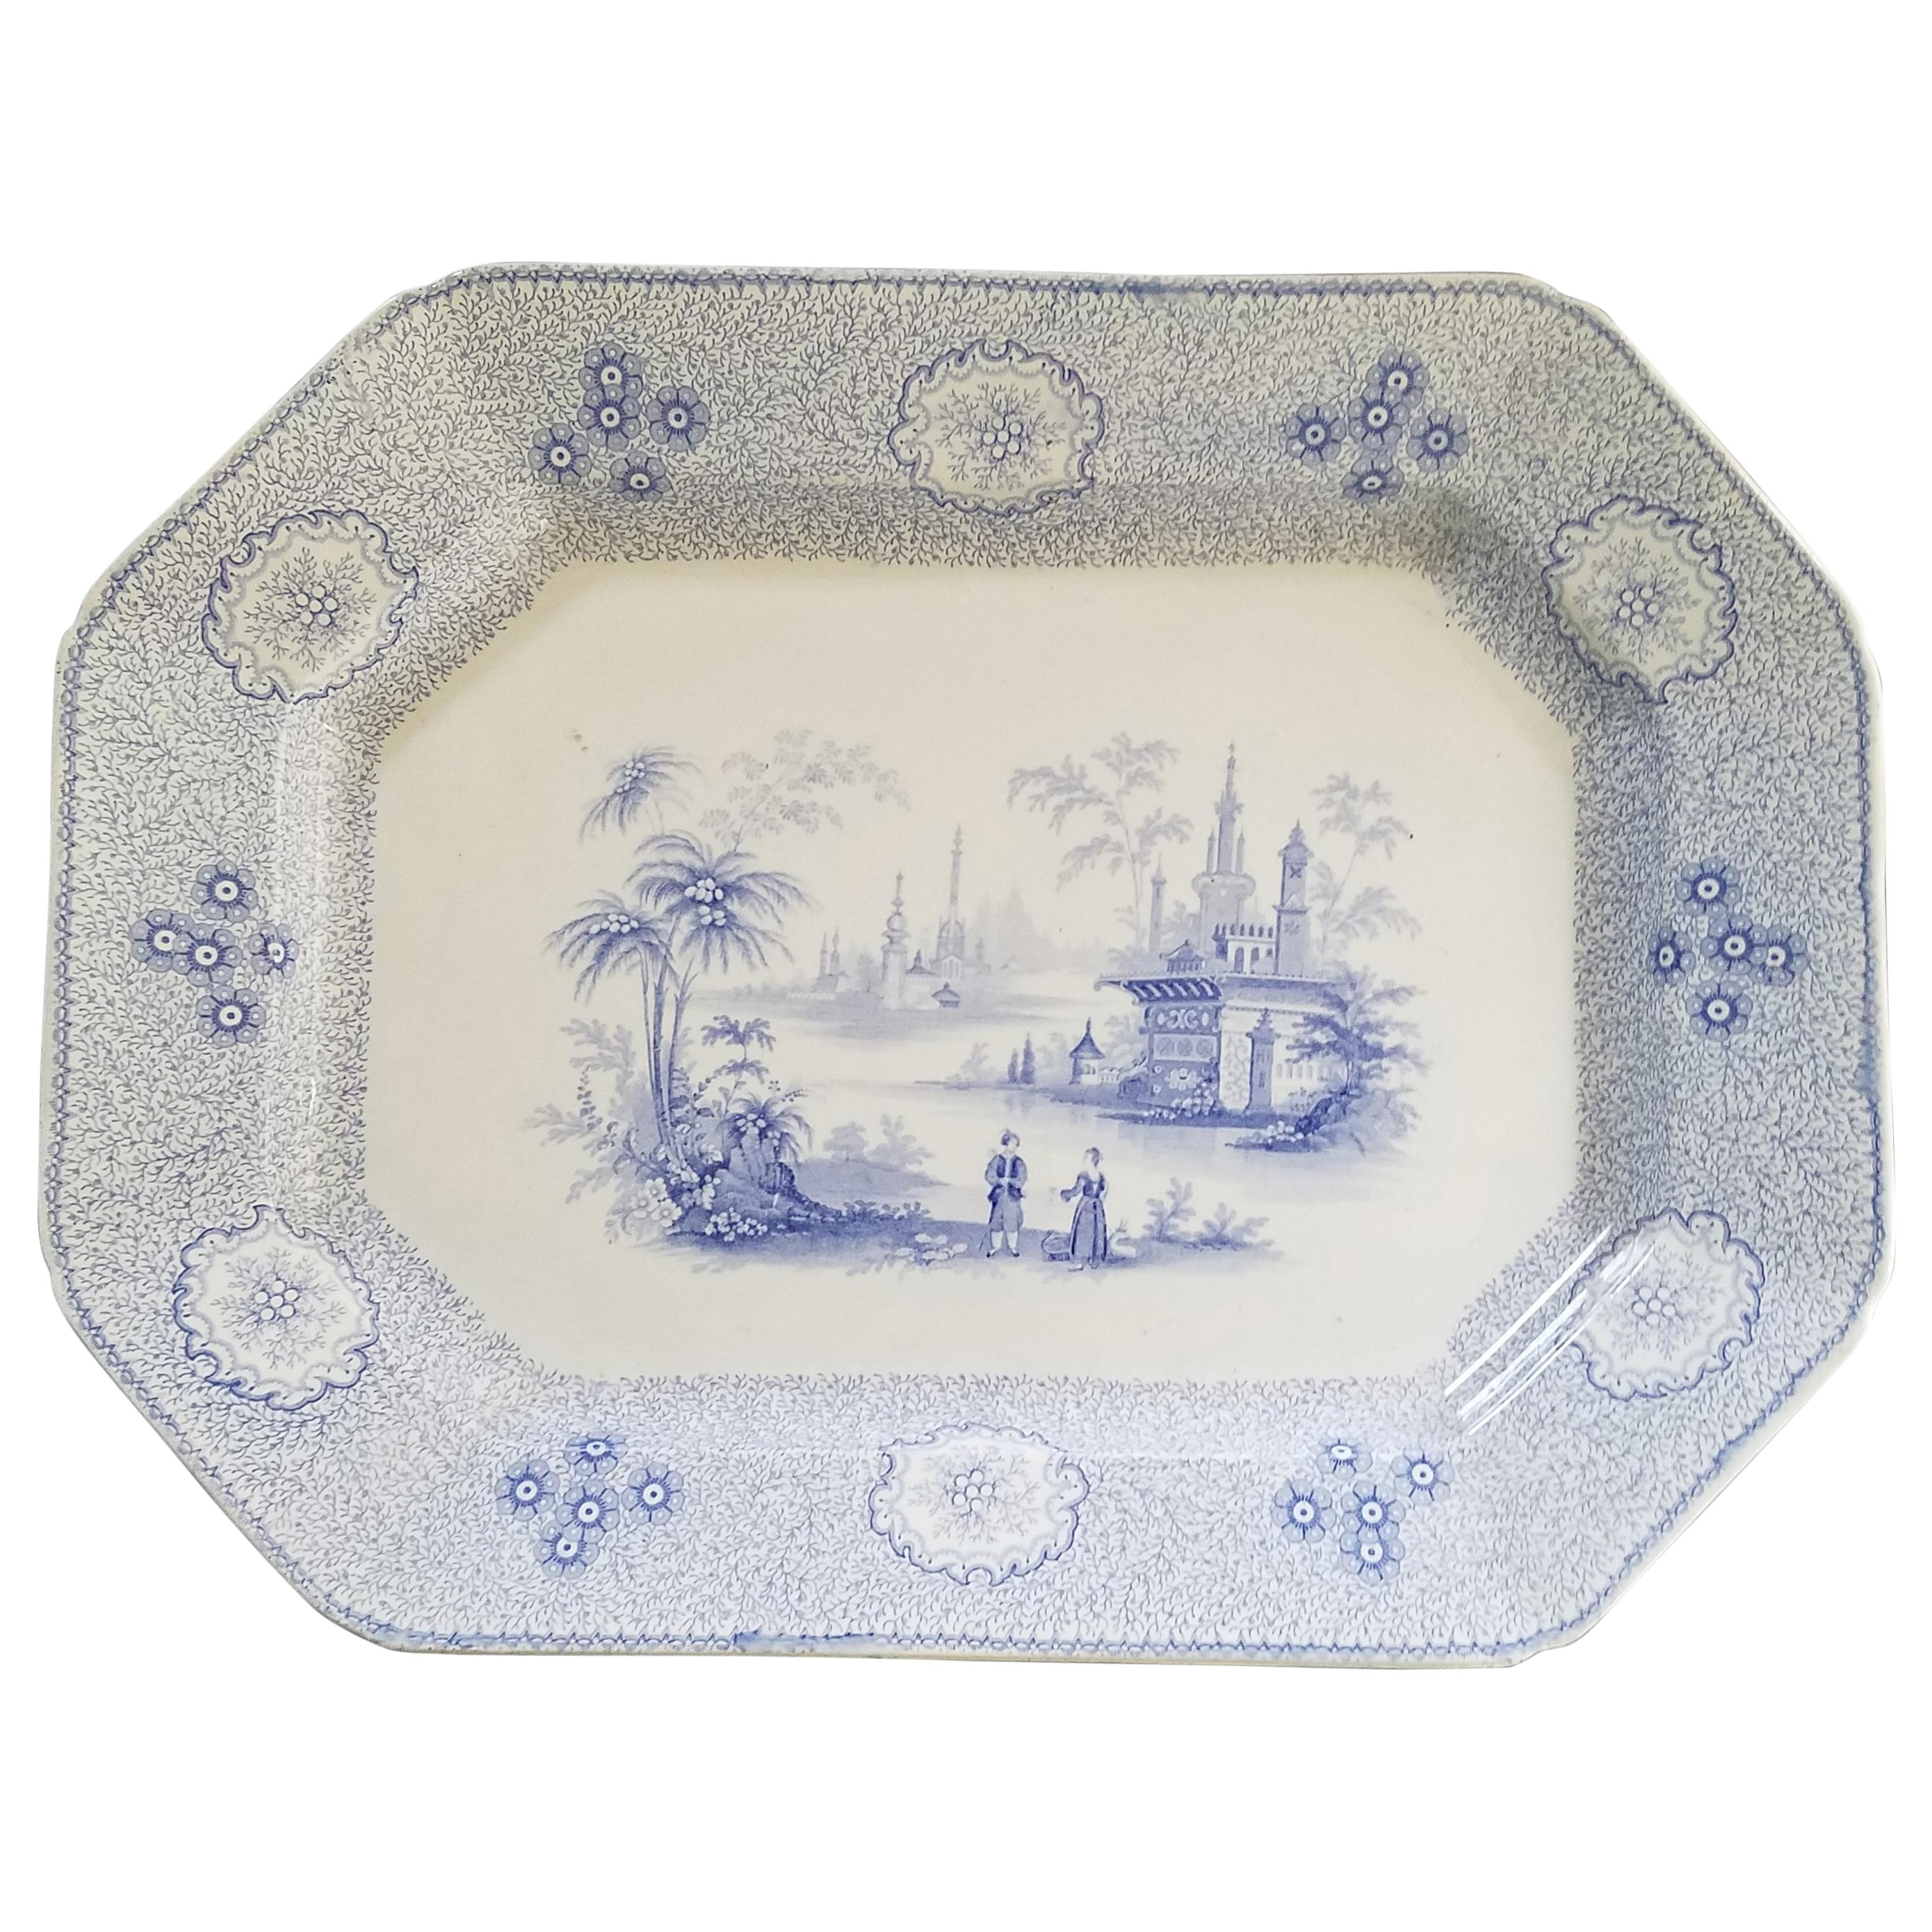 Antique Large English Staffordshire Blue and White Platter, 19th Century